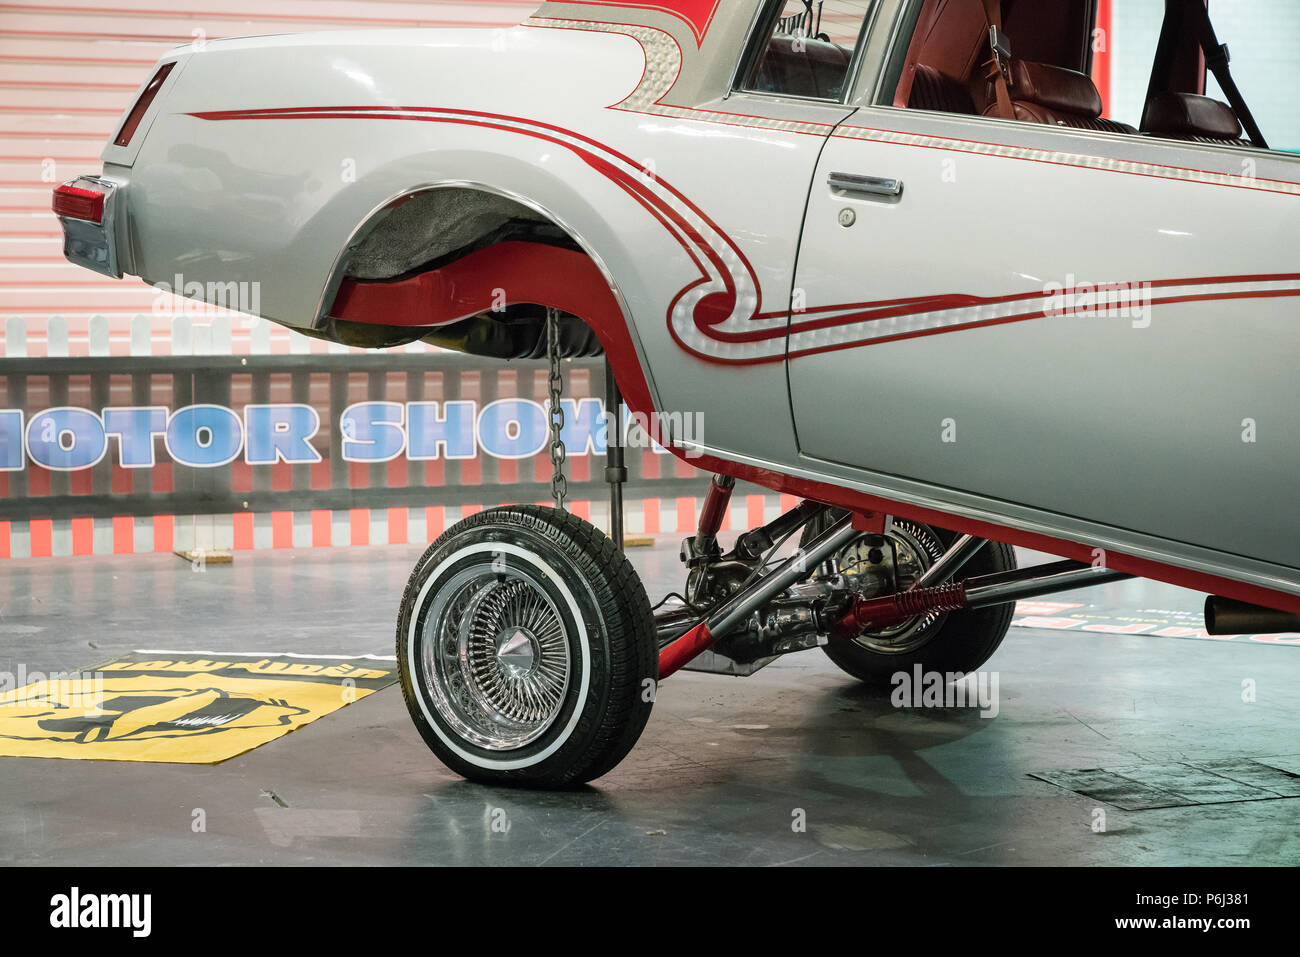 Lowrider Car Vintage Stock Photos Lowrider Car Vintage Stock - San diego lowrider car show 2018